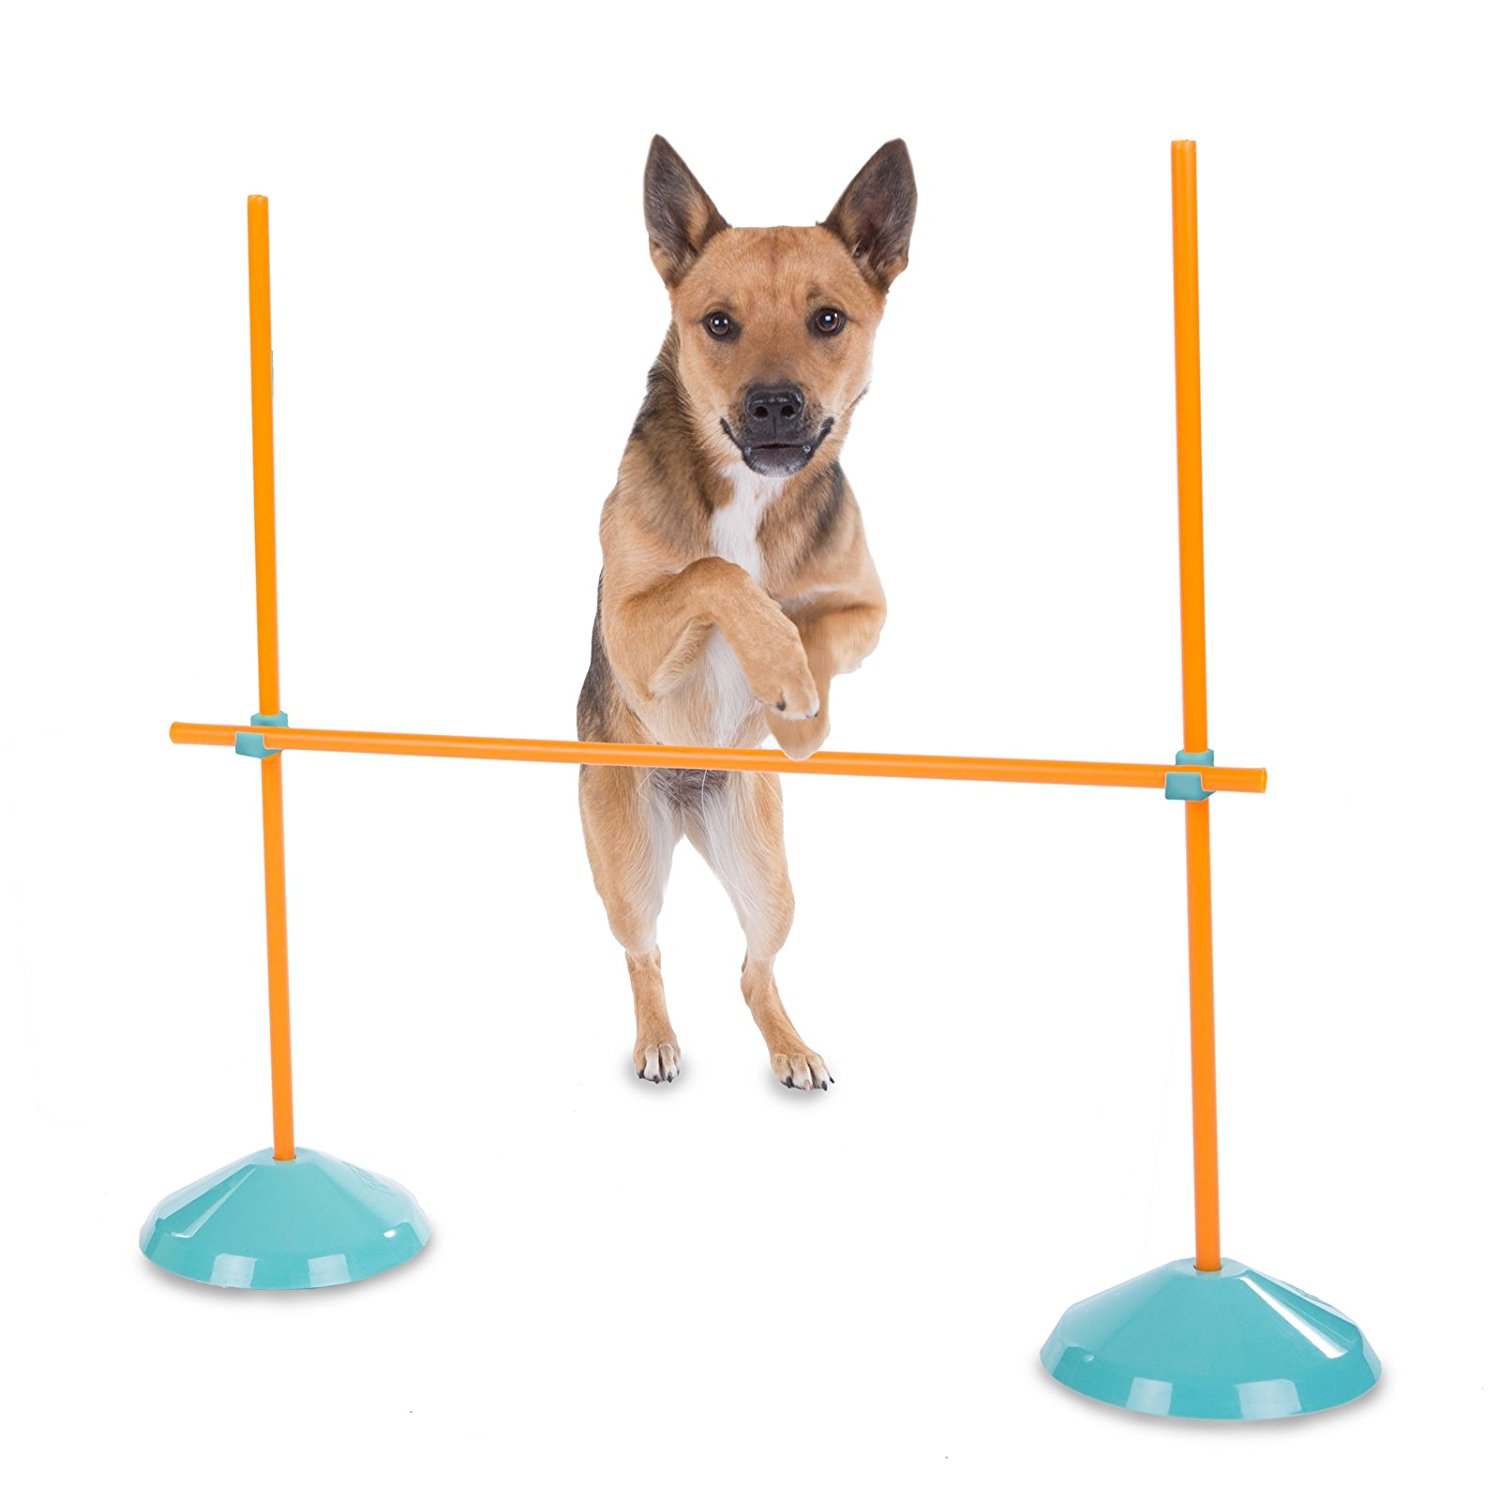 Outward Hound Zip & Zoom Indoor Agility Kit for Dogs